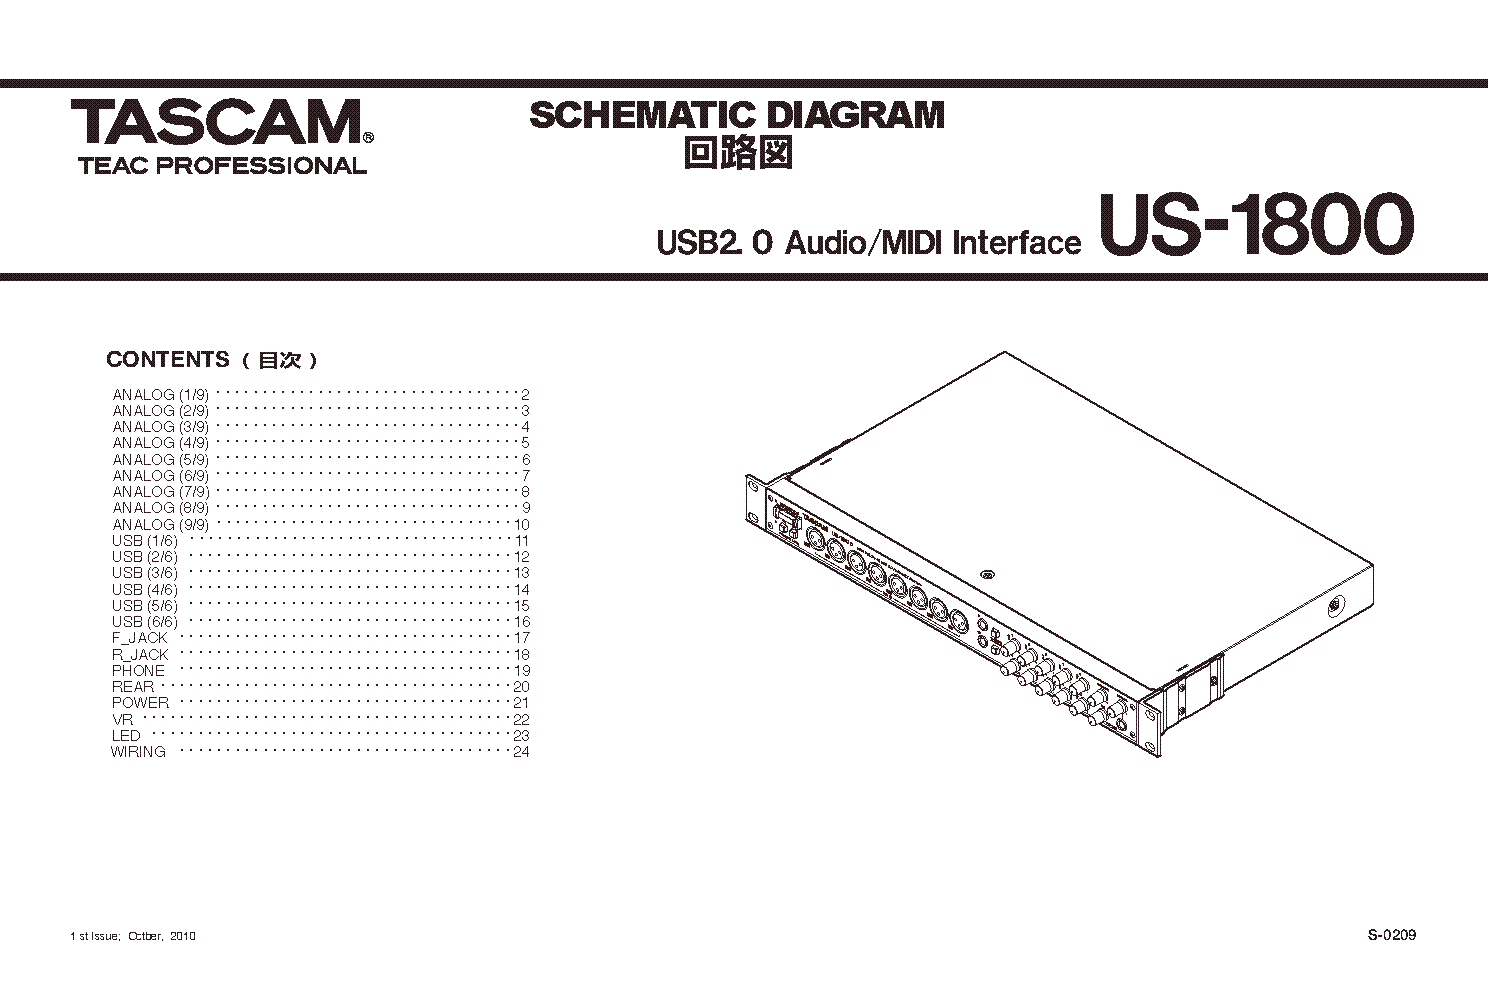 tascam wire diagram wiring library Stero Wire Diagram tascam us 1800 schematics service manual (1st page)